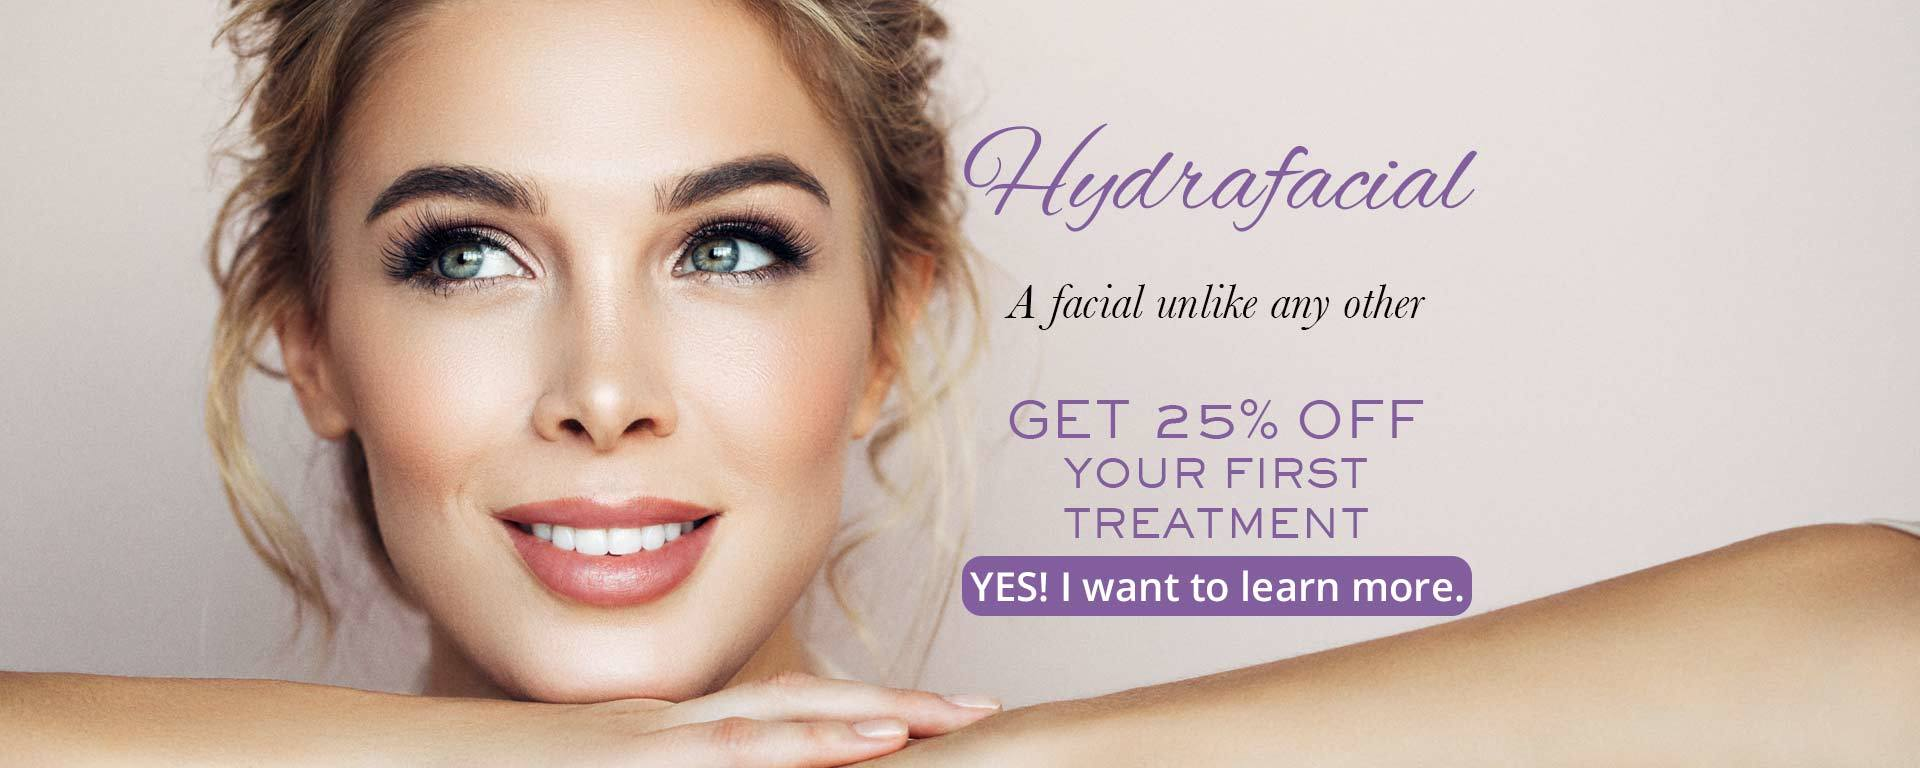 Hydrafacial. A facial unlike any other. Get 25% OFF Your first treatment.